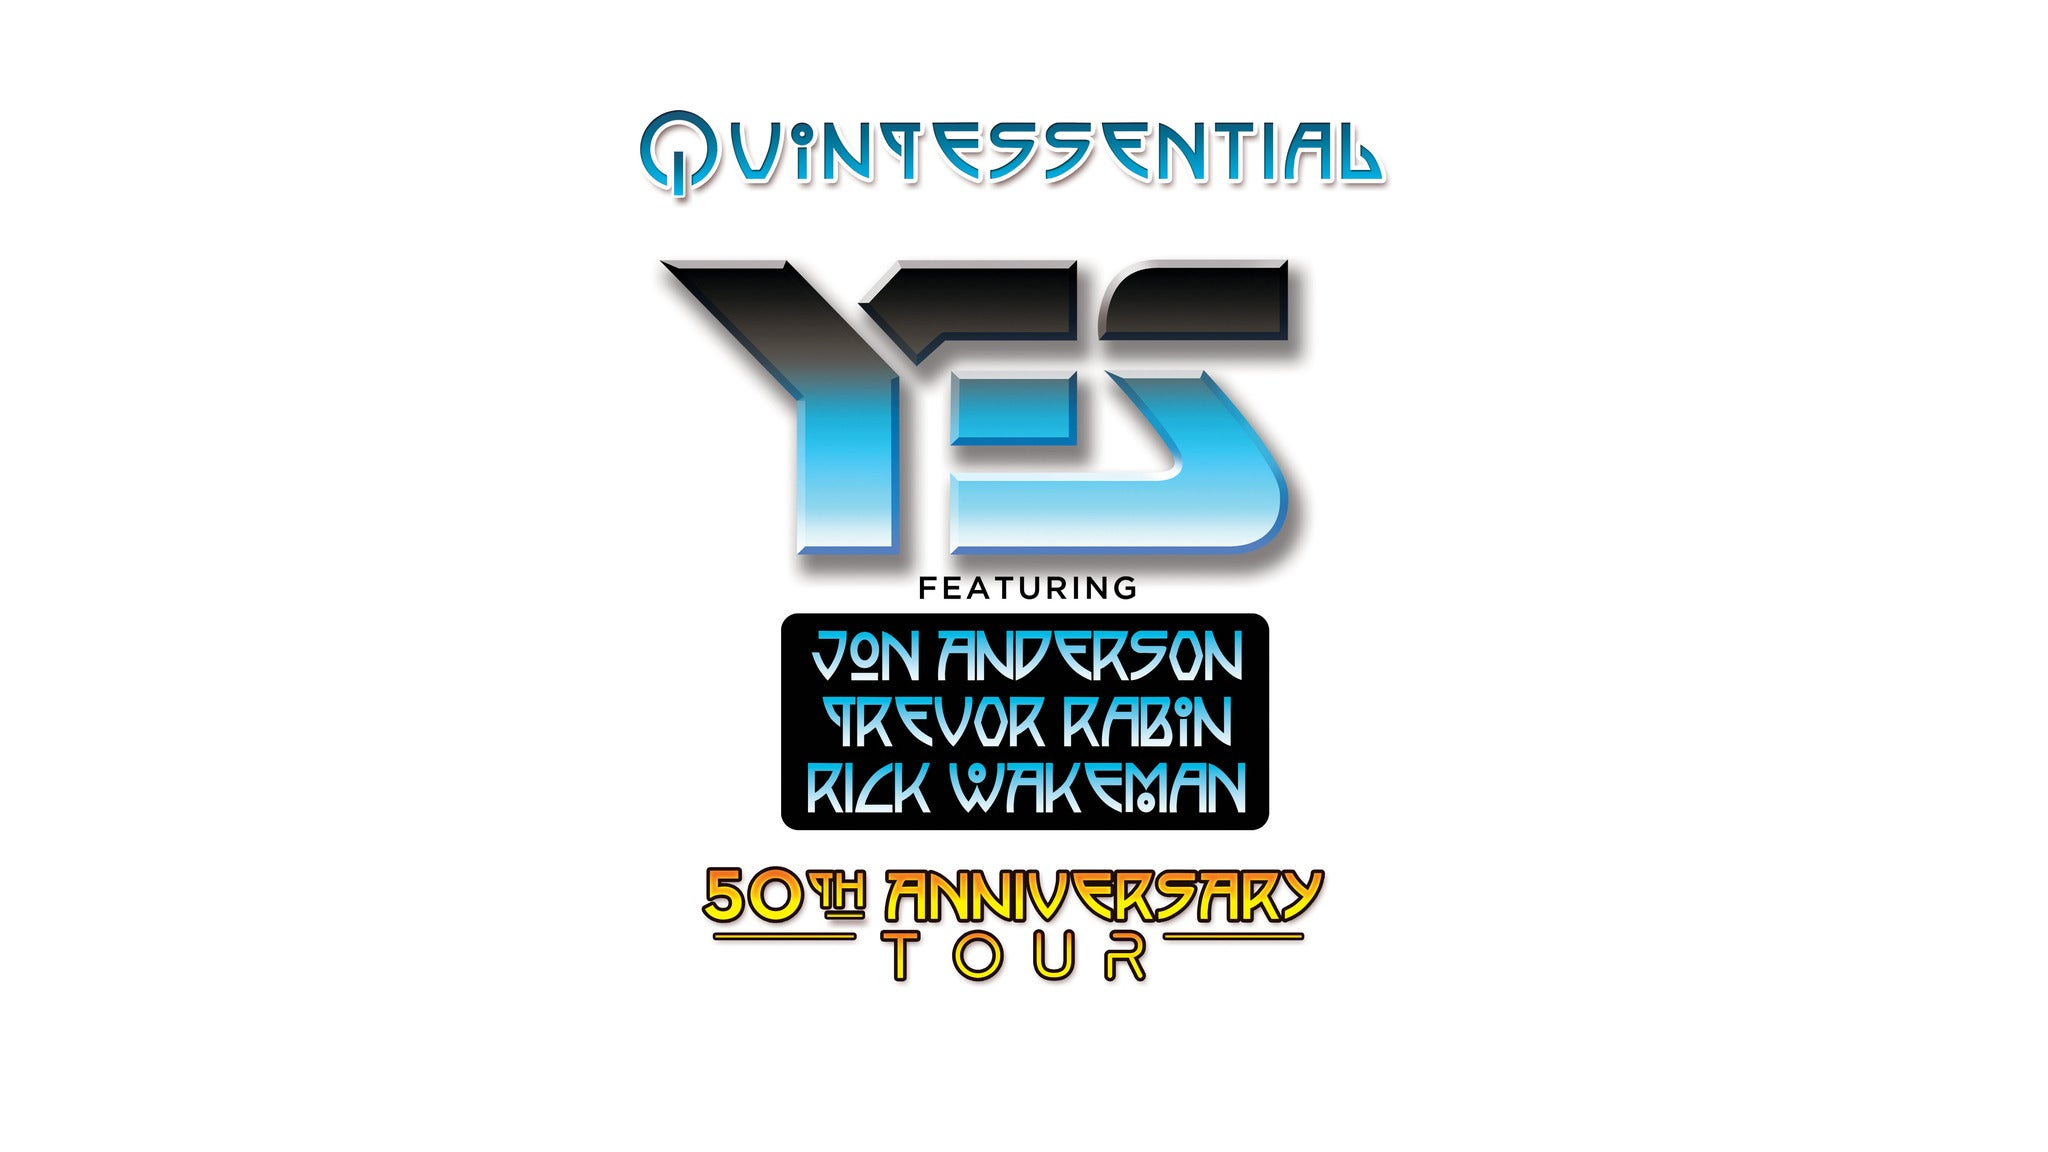 YES featuring Jon Anderson, Trevor Rabin, Rick Wakeman - Denver, CO 80223